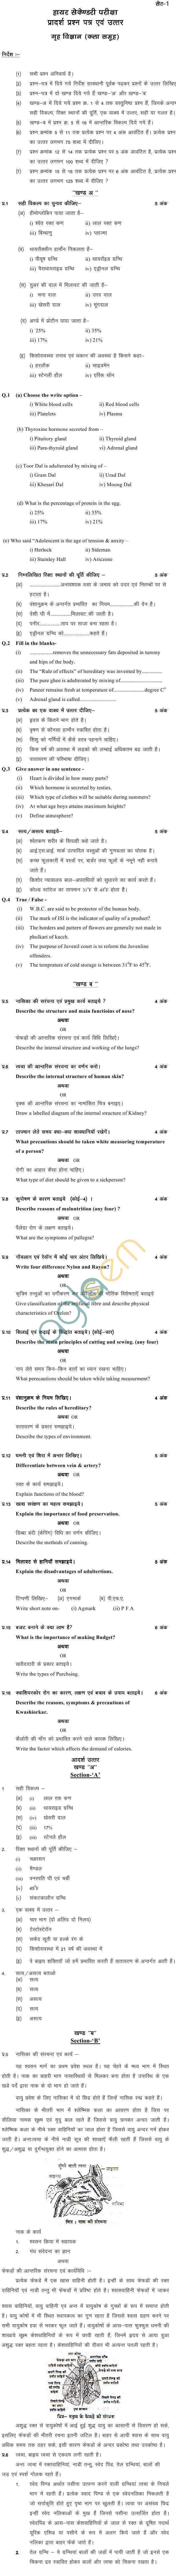 MP Board Class XII Anatomy Phy. and Hygene Model Questions & Answers - Set 1